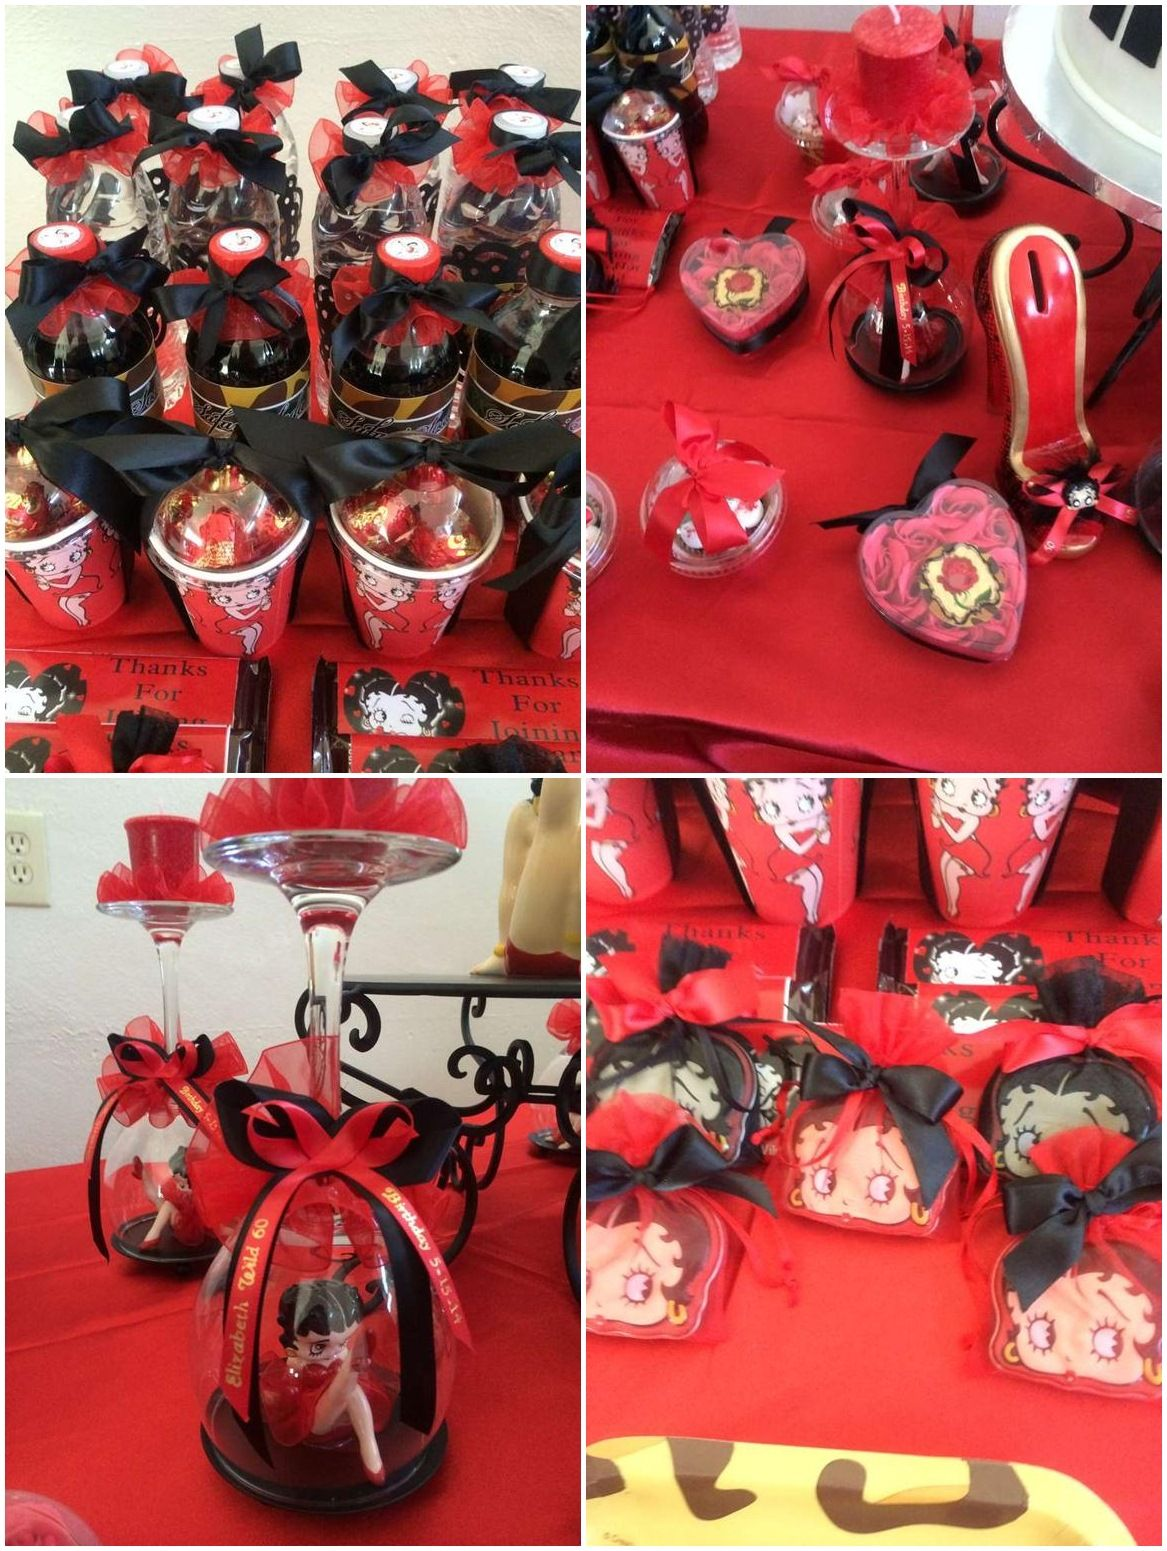 cheap betty boop party decorations betty boop party decorations betty boop party rental betty boop party - Cheap Party Decorations